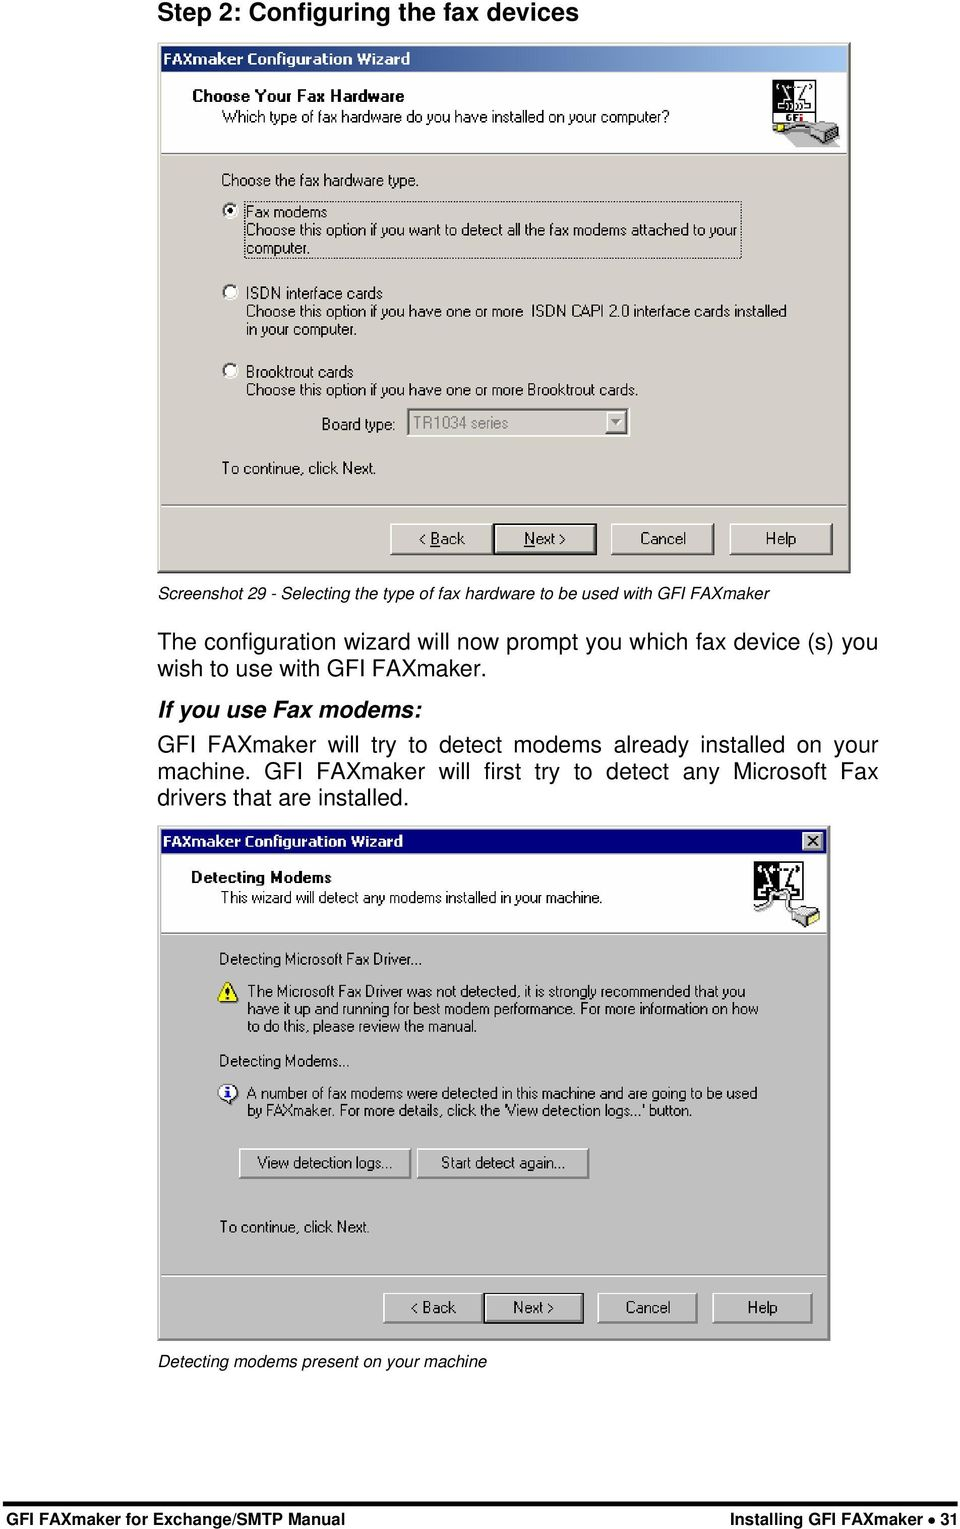 If you use Fax modems: GFI FAXmaker will try to detect modems already installed on your machine.